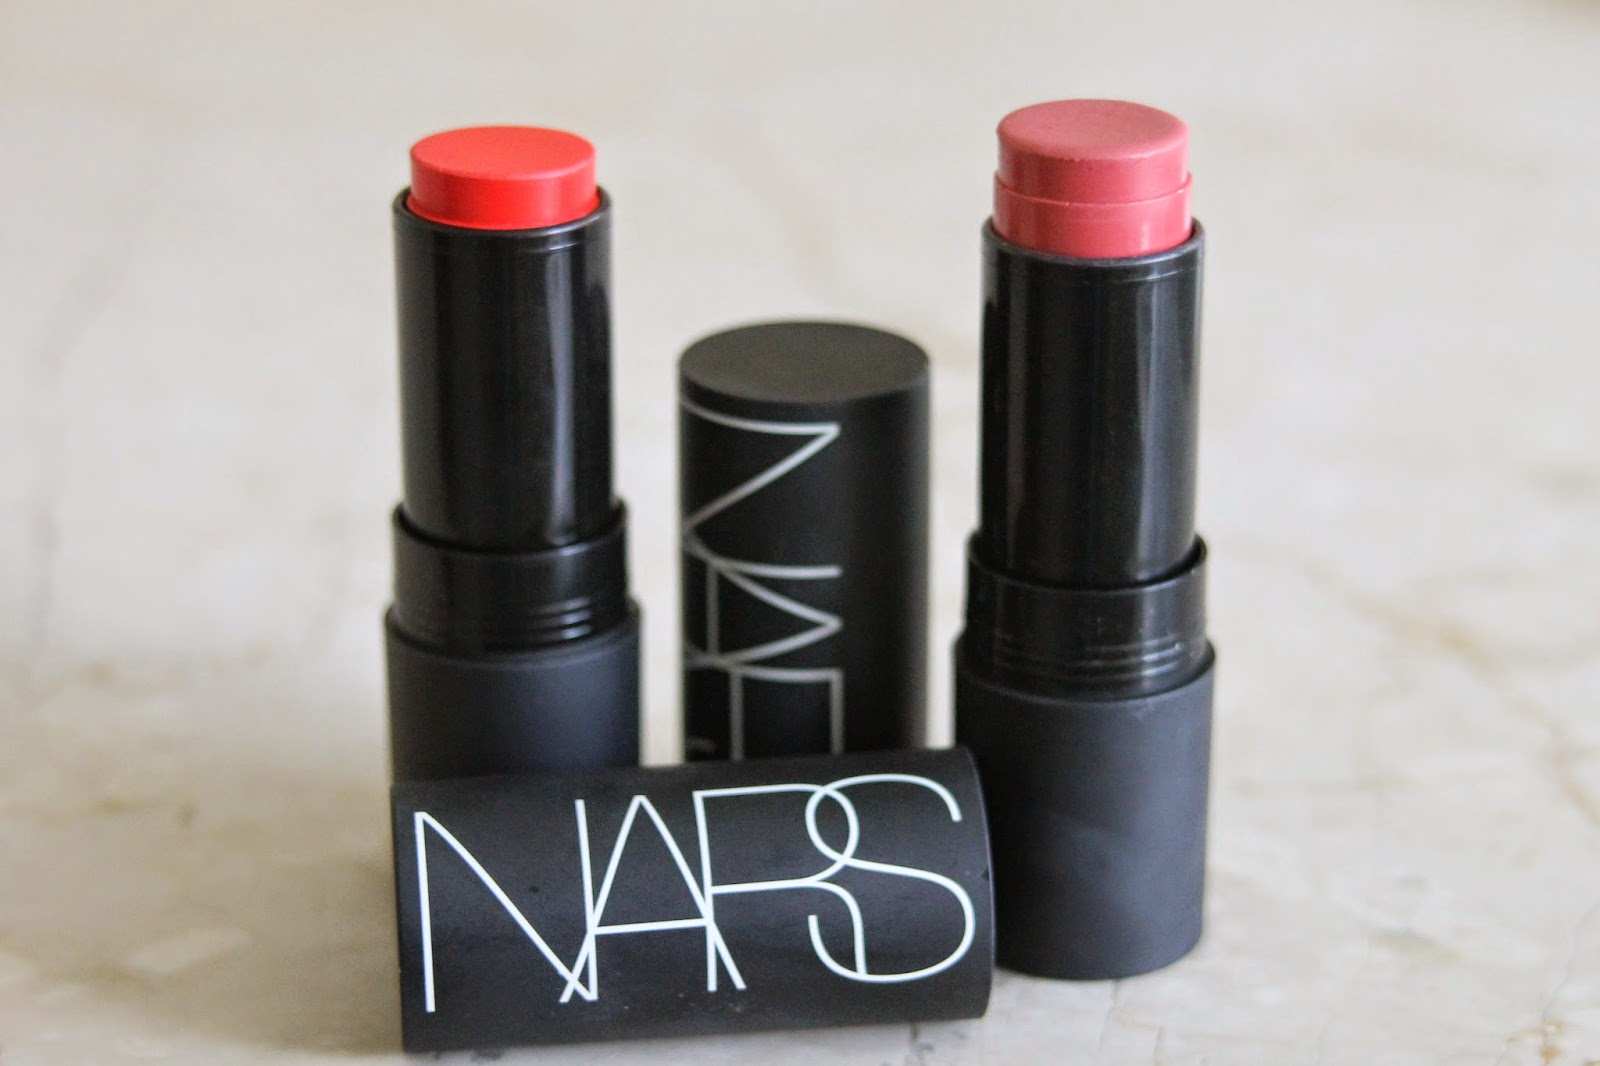 THE REVIEW: NARS MATTE MULTIPLES